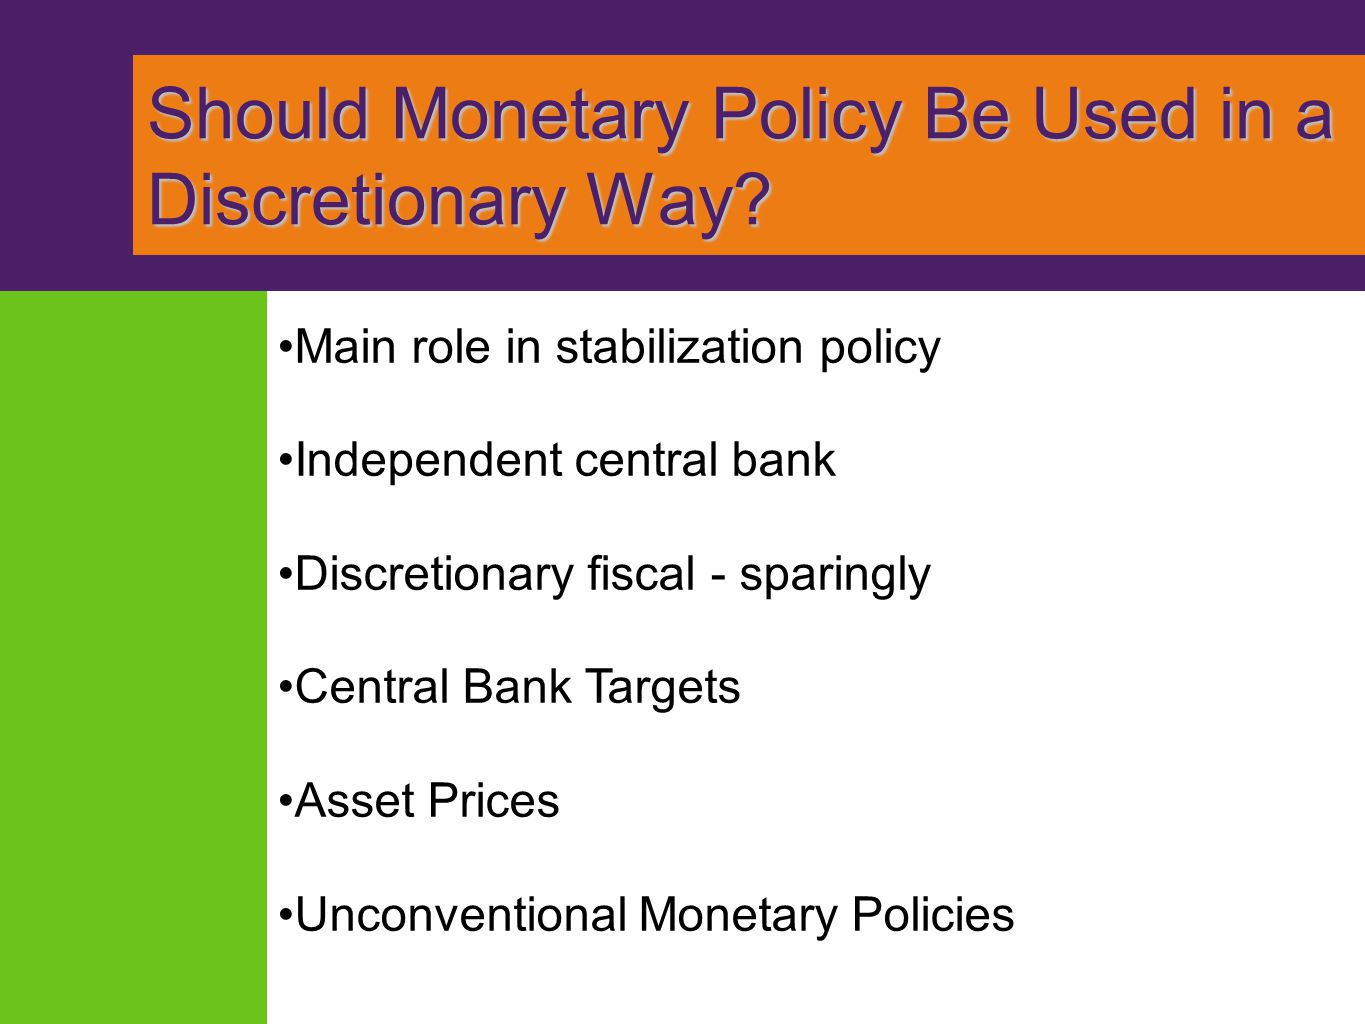 Should Monetary Policy Be Used in a Discretionary Way? Should Monetary Policy Be Used in a Discretionary Way? Main role in stabilization policy Indepe